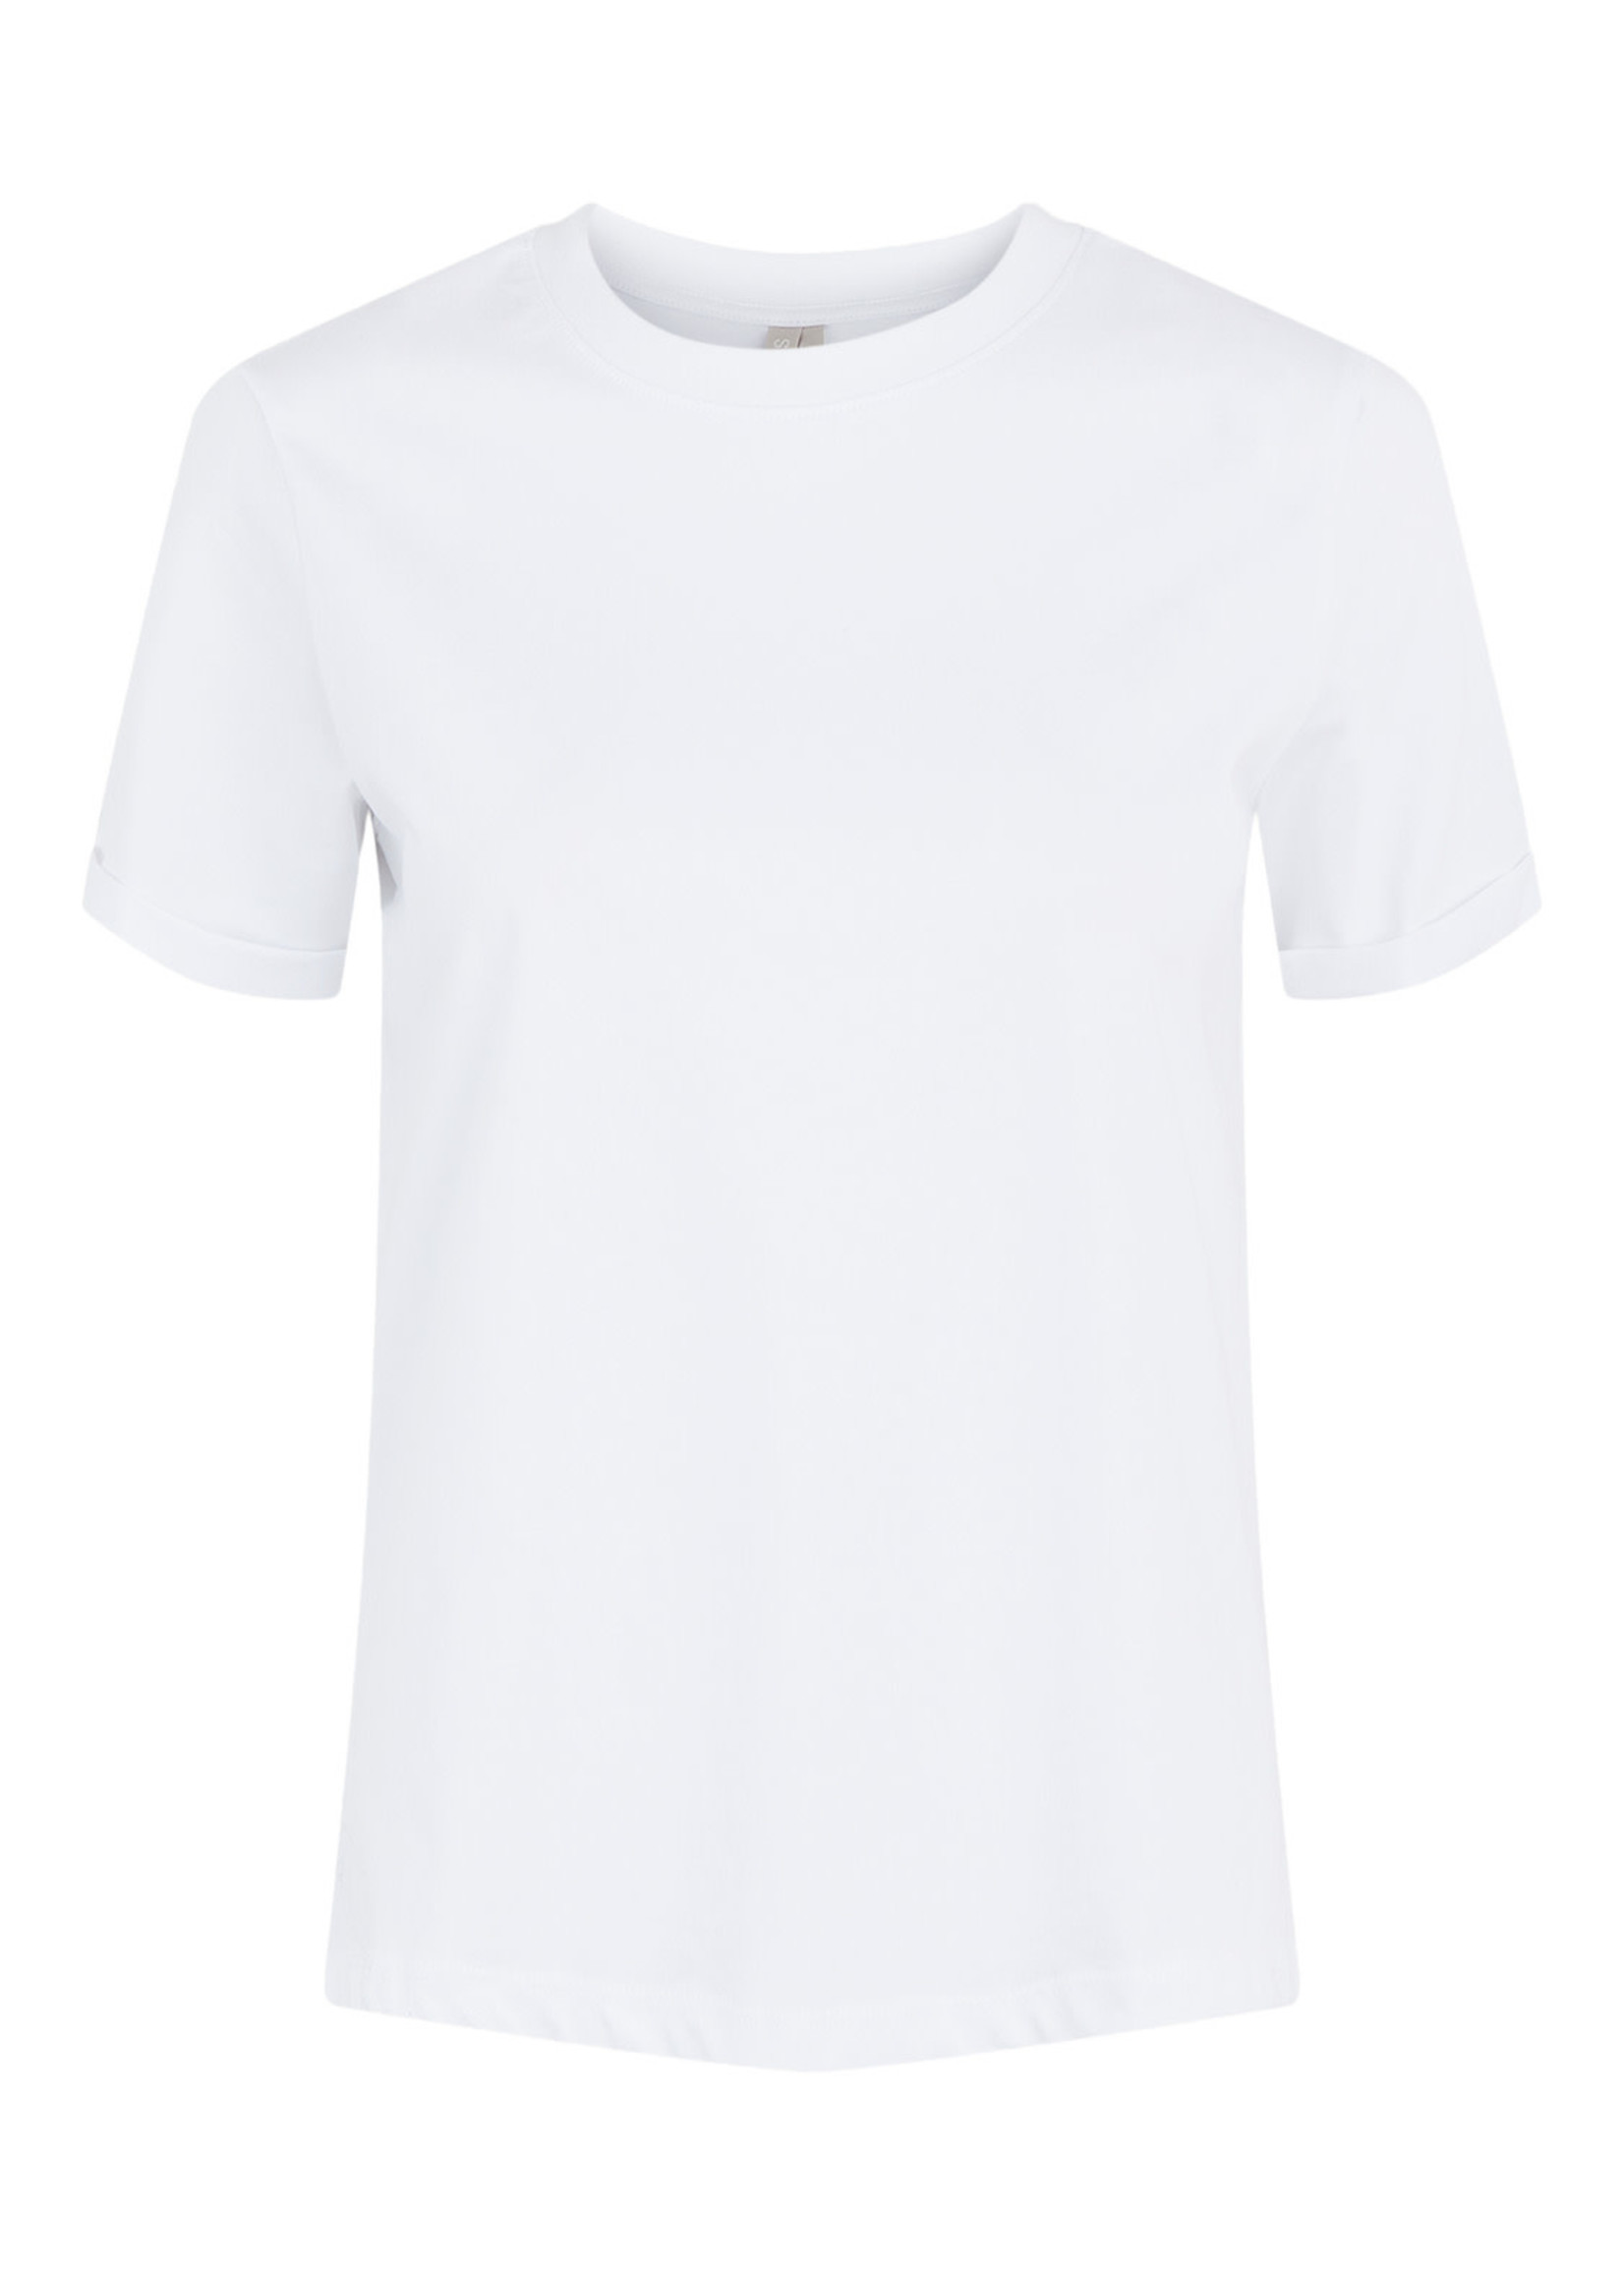 PIECES RIA SS FOLD UP TEE,wit